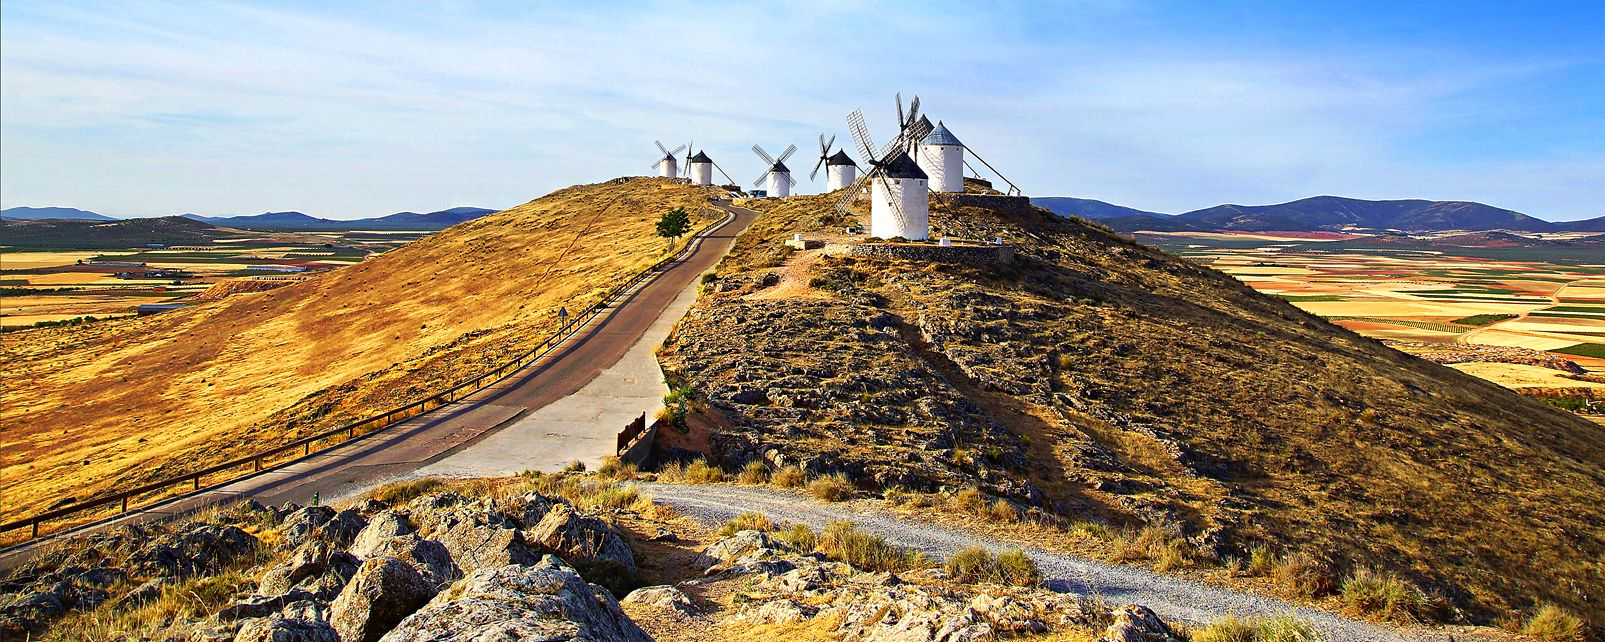 The Don Quixote sites , The places described in Don Quixote , Spain